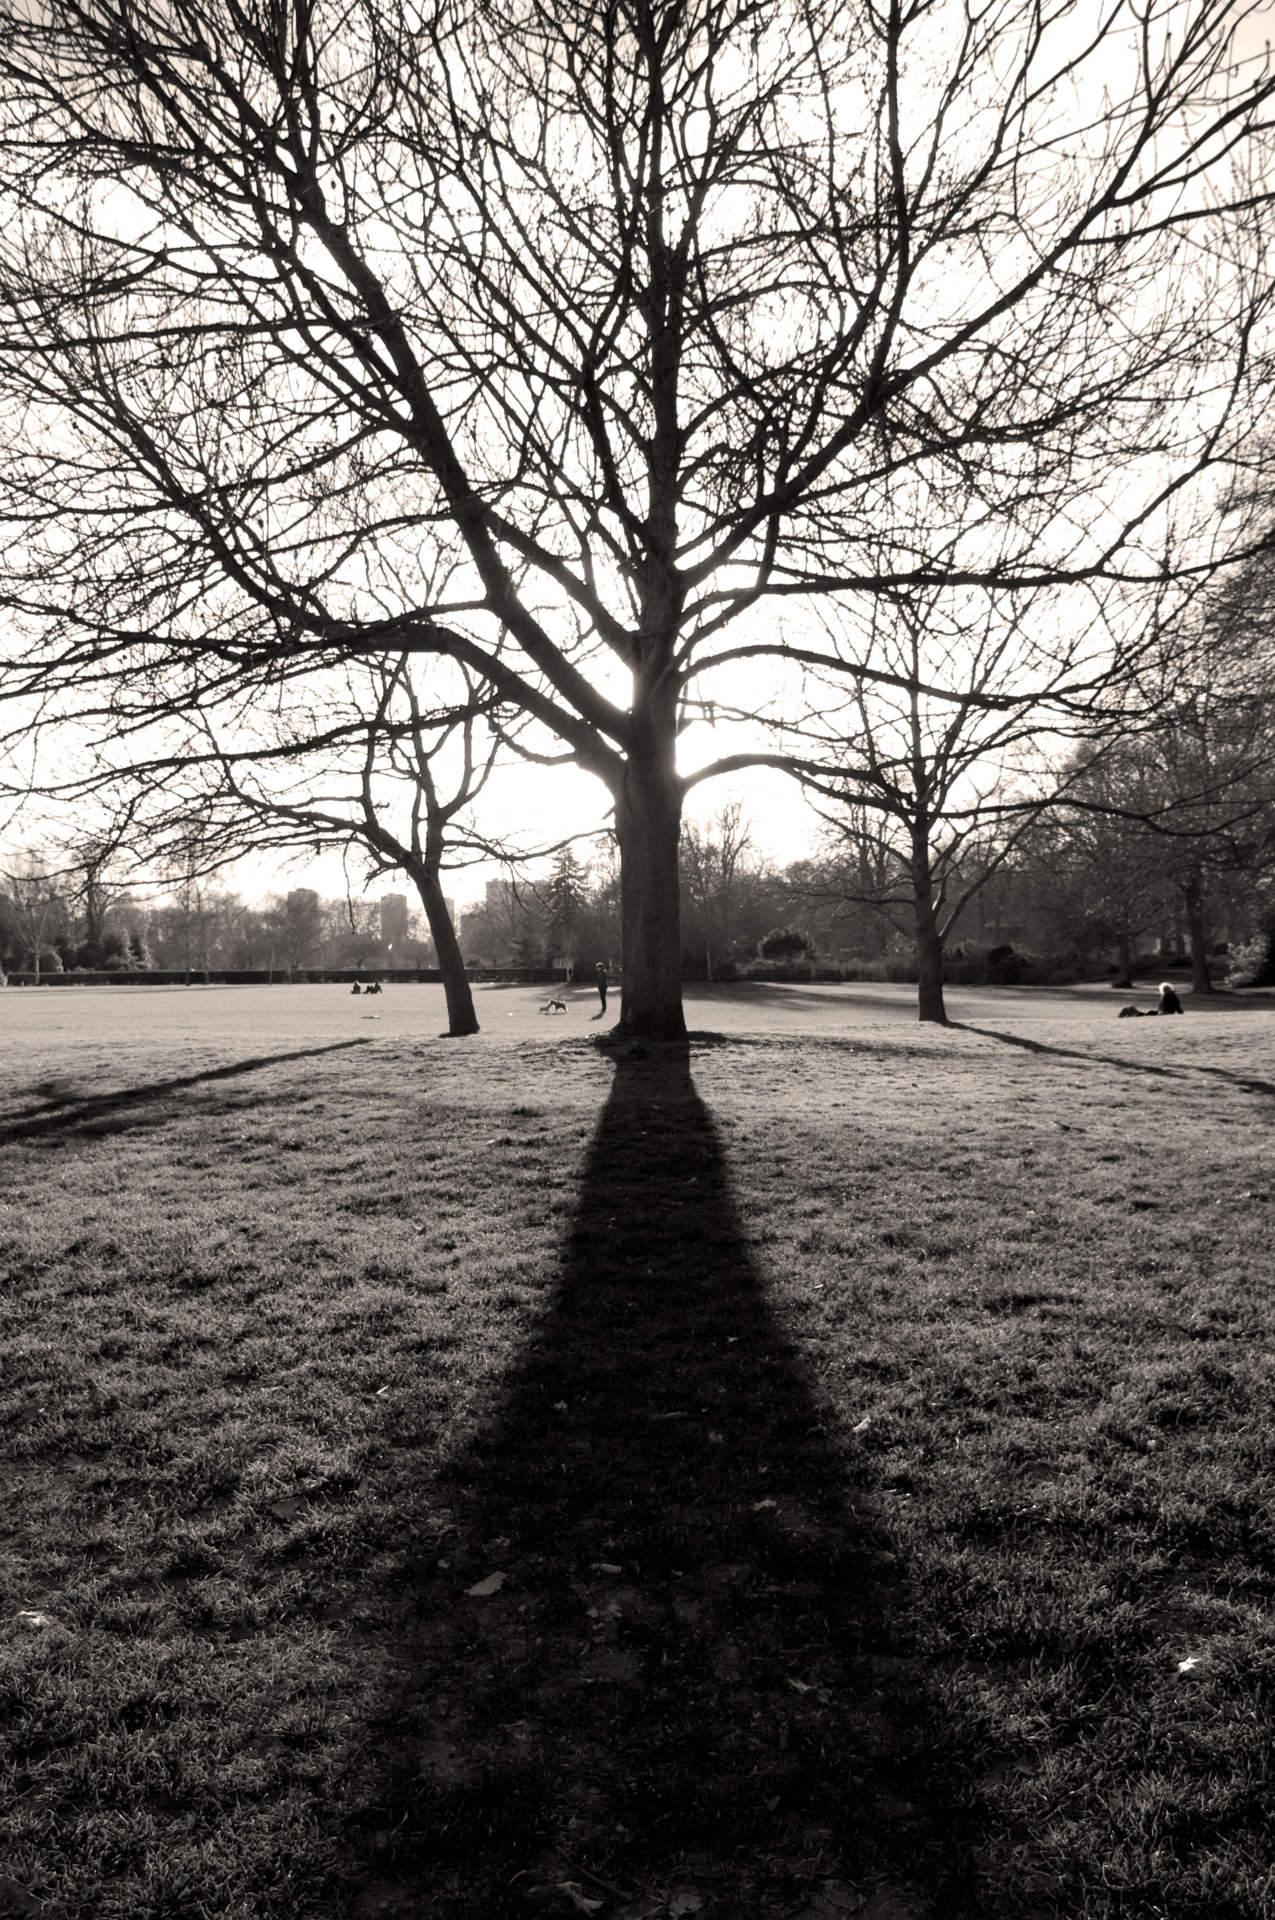 The lengthening shadows tell me summer is nearly here, and I can't wait!!